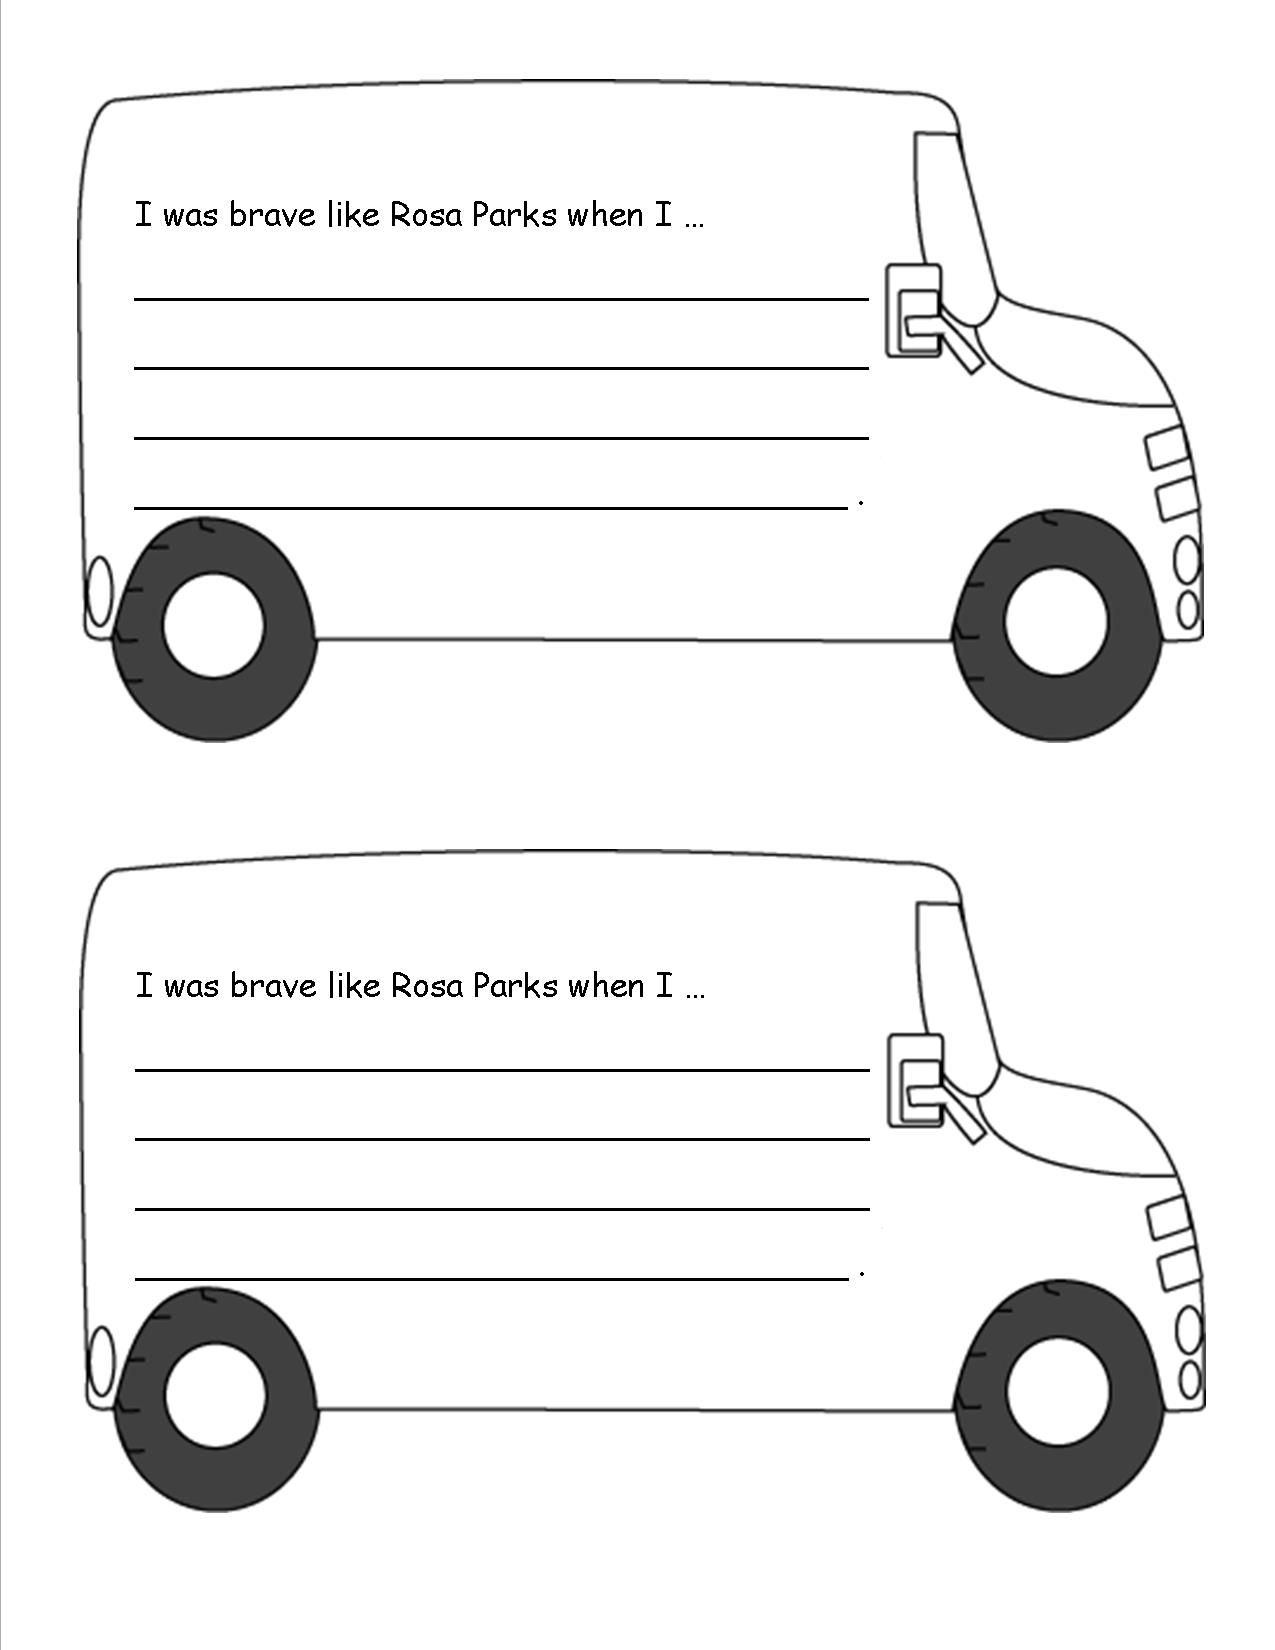 Rosa Parks Worksheet This Activity Is Great For Students